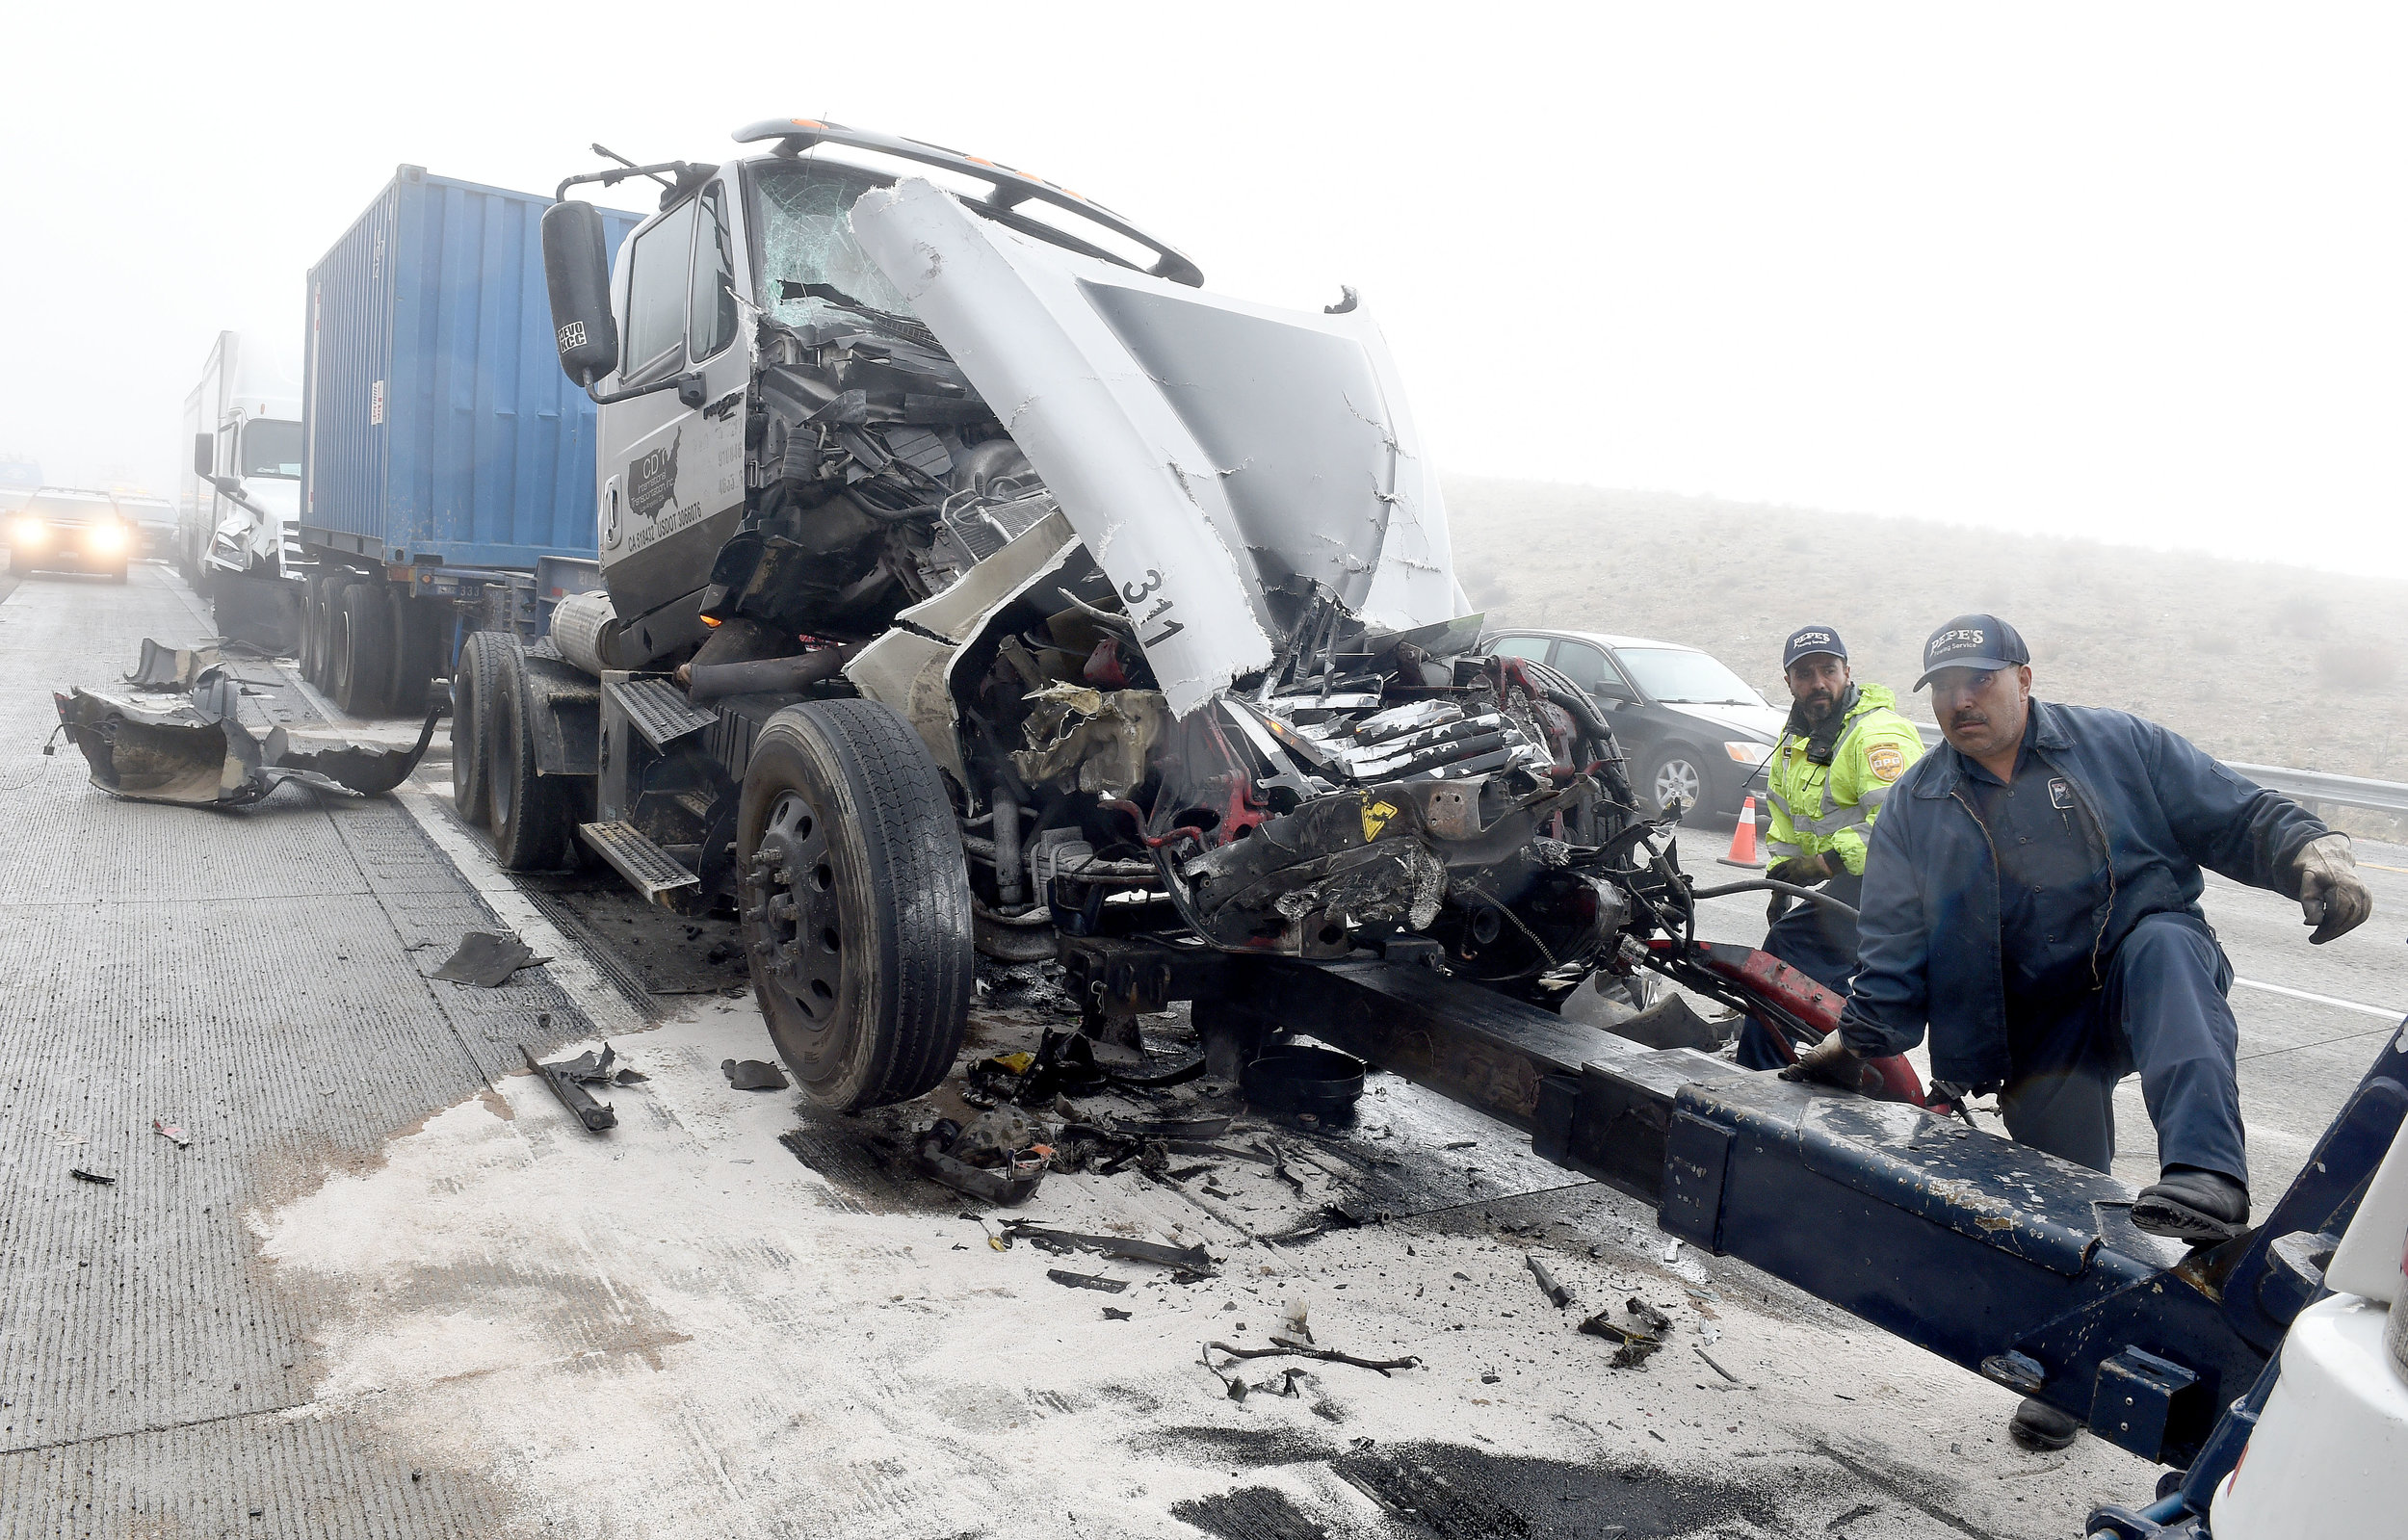 Crews work to clear one of the crashed big rig trucks involved in a major pile up on the southbound I-15 Freeway in the Cajon Pass Wednesday morning. The southbound I-15 Freeway was shut down in the Cajon Pass Wednesday, January 16, 2019 for several hours following a major pile up at approximately 9 a.m. involving at least 19 vehicles which was believed to be weather related. No major injuries were reported.